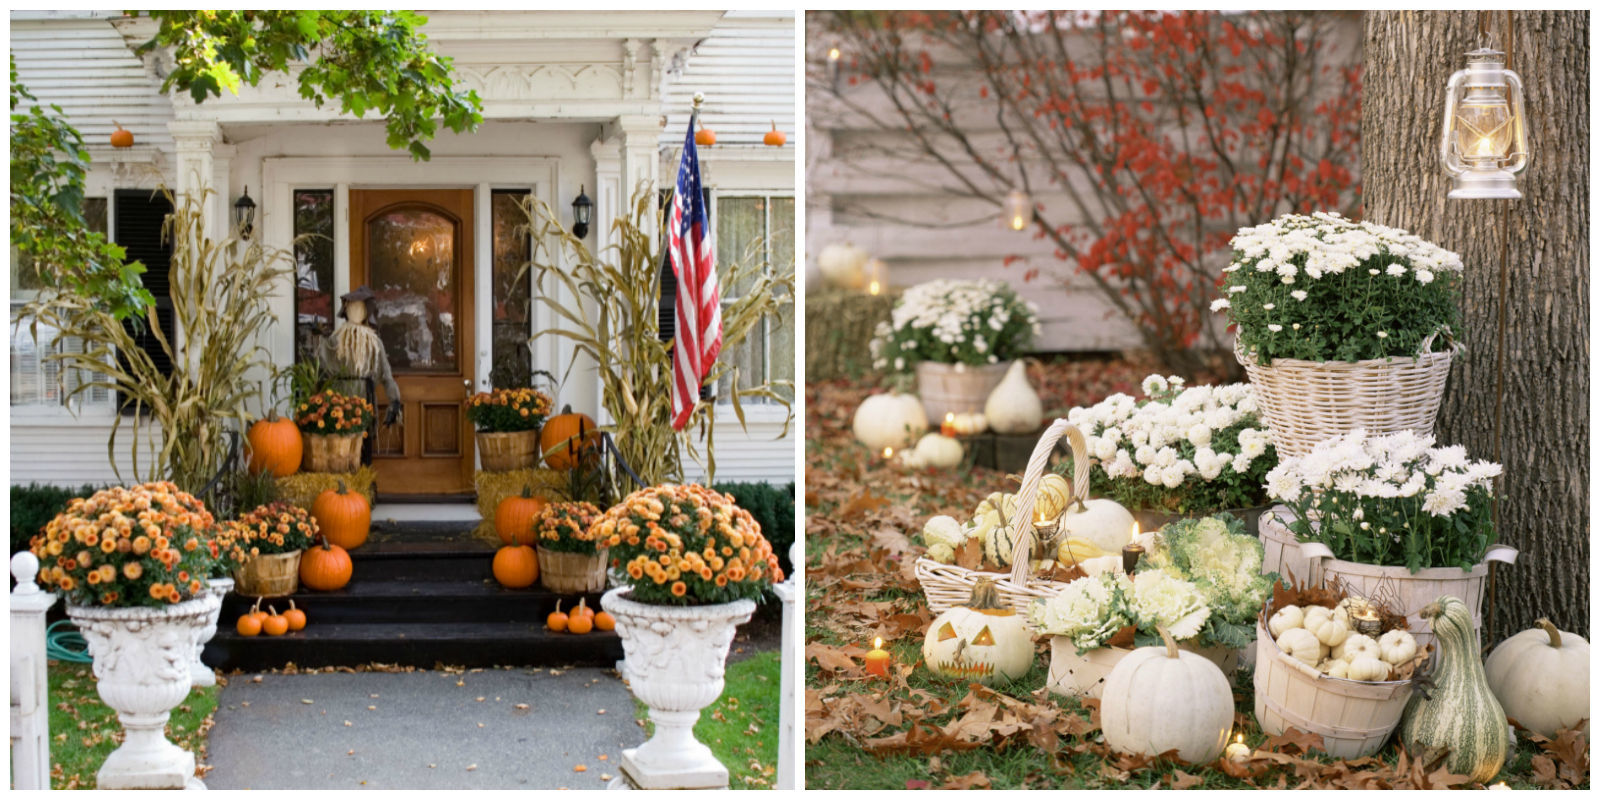 25 outdoor halloween decorations porch decorating ideas. Black Bedroom Furniture Sets. Home Design Ideas